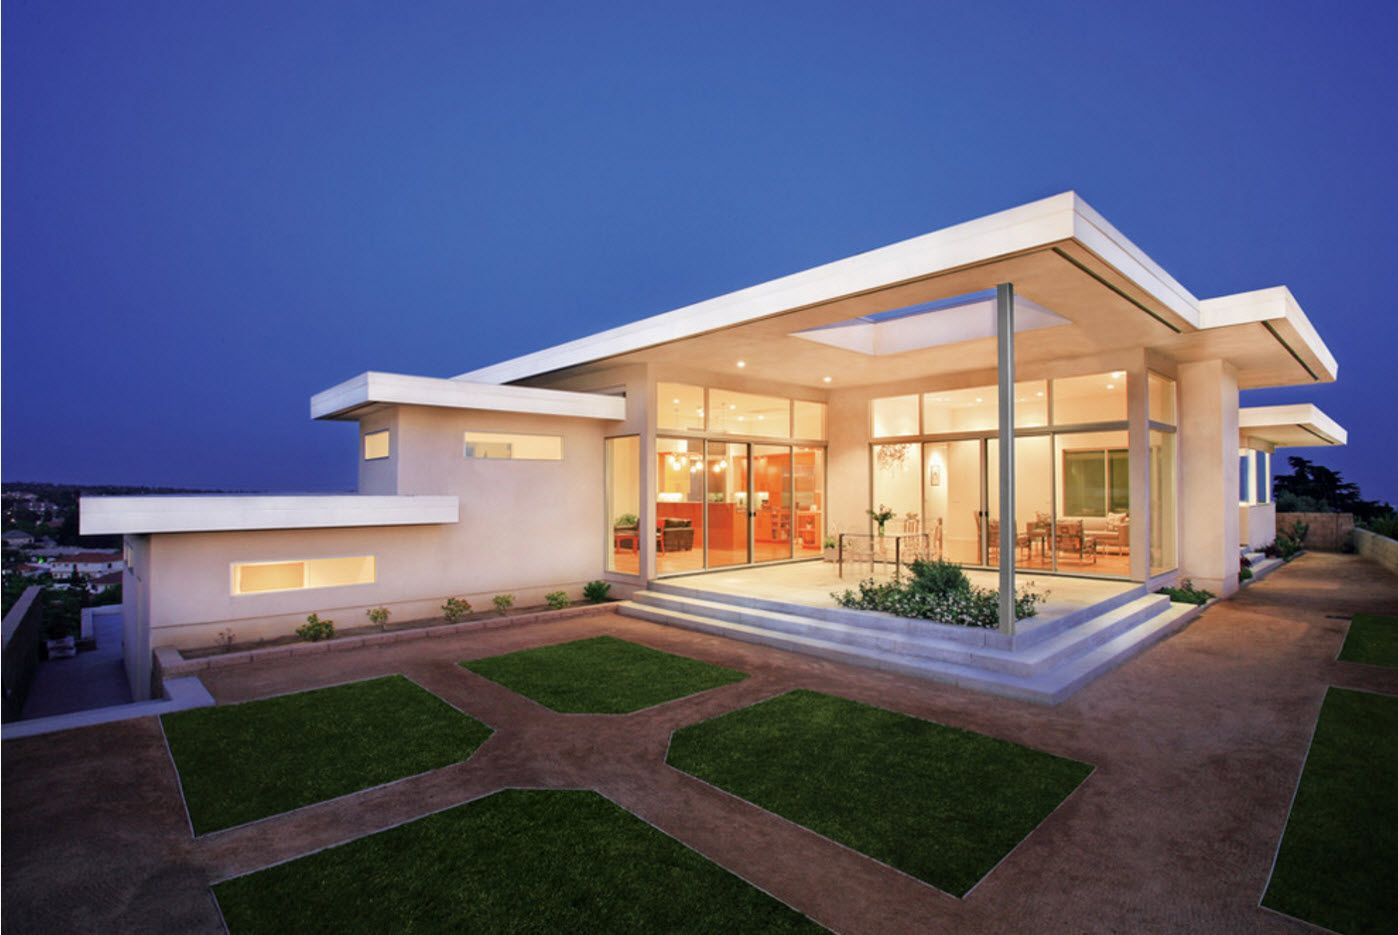 56 7 - Get Small Modern House Roof Design Pics